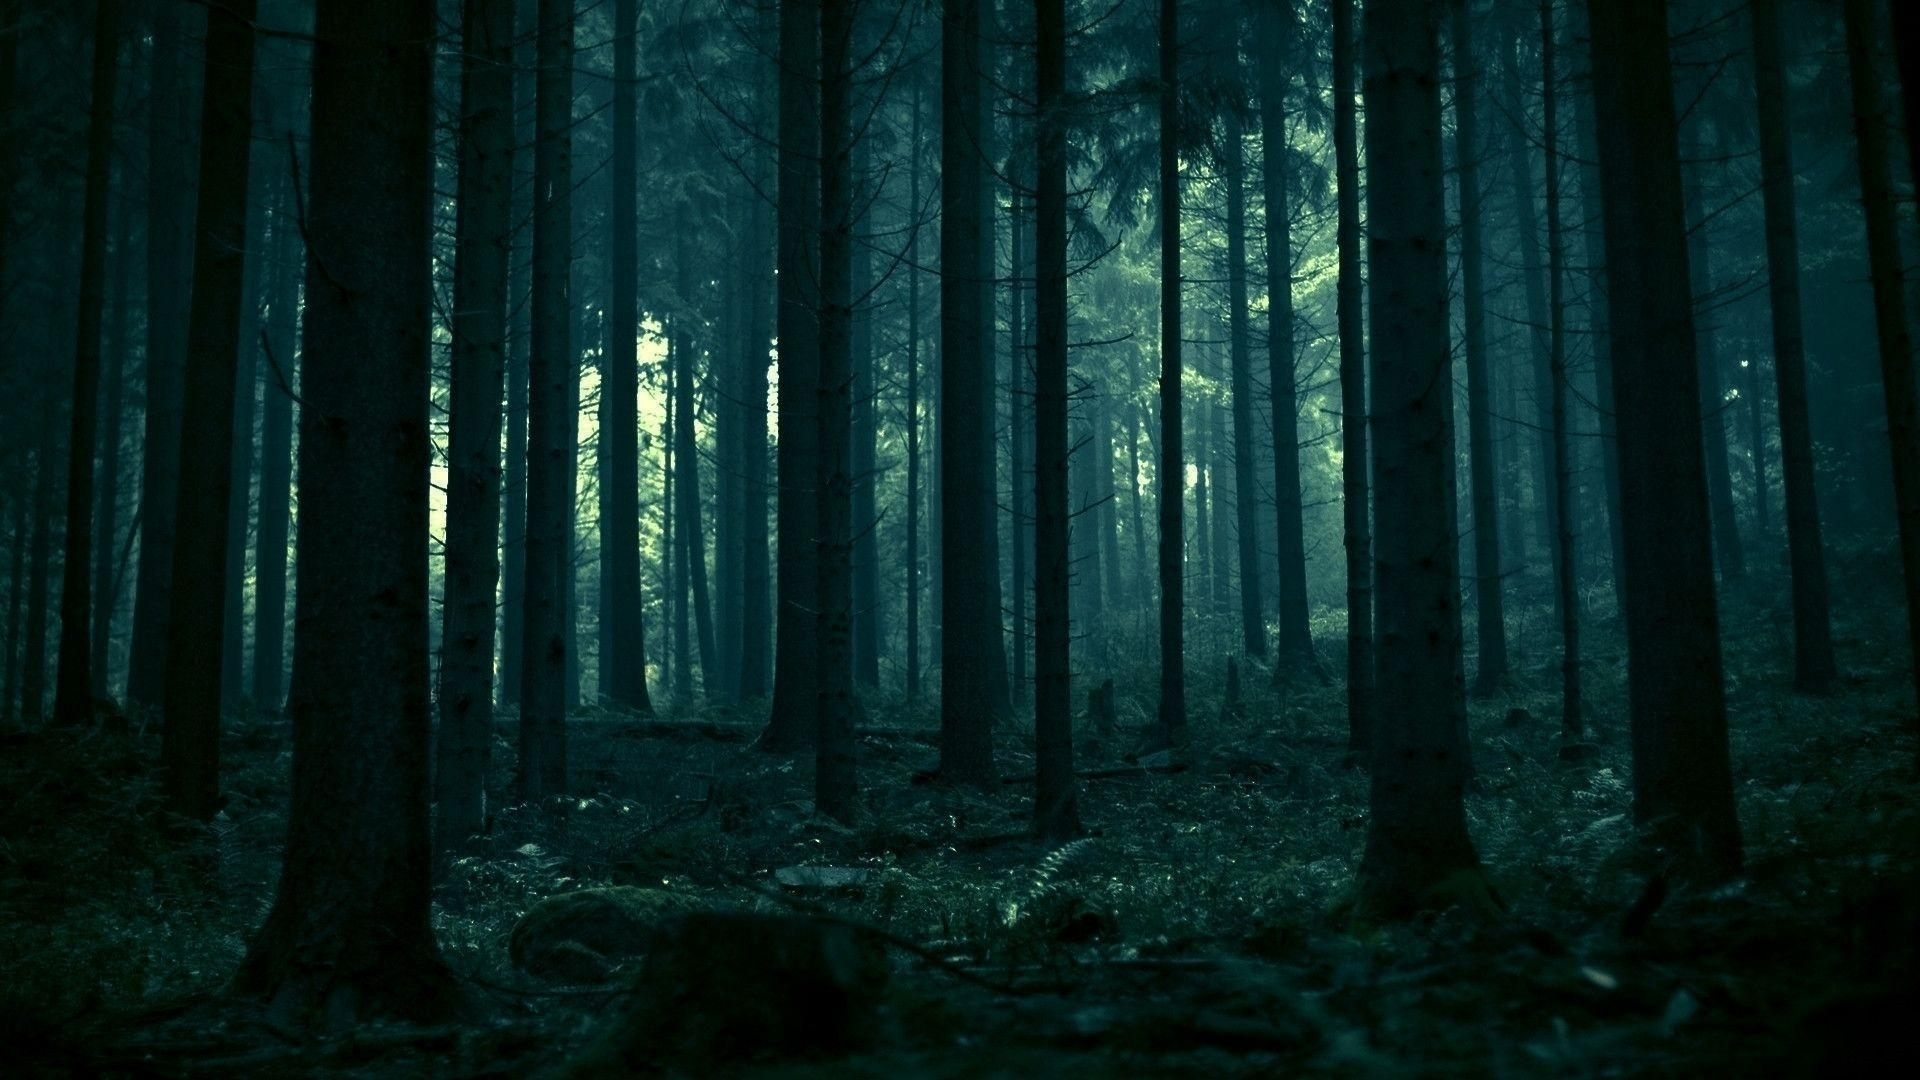 dark forest wallpapers - wallpaper cave